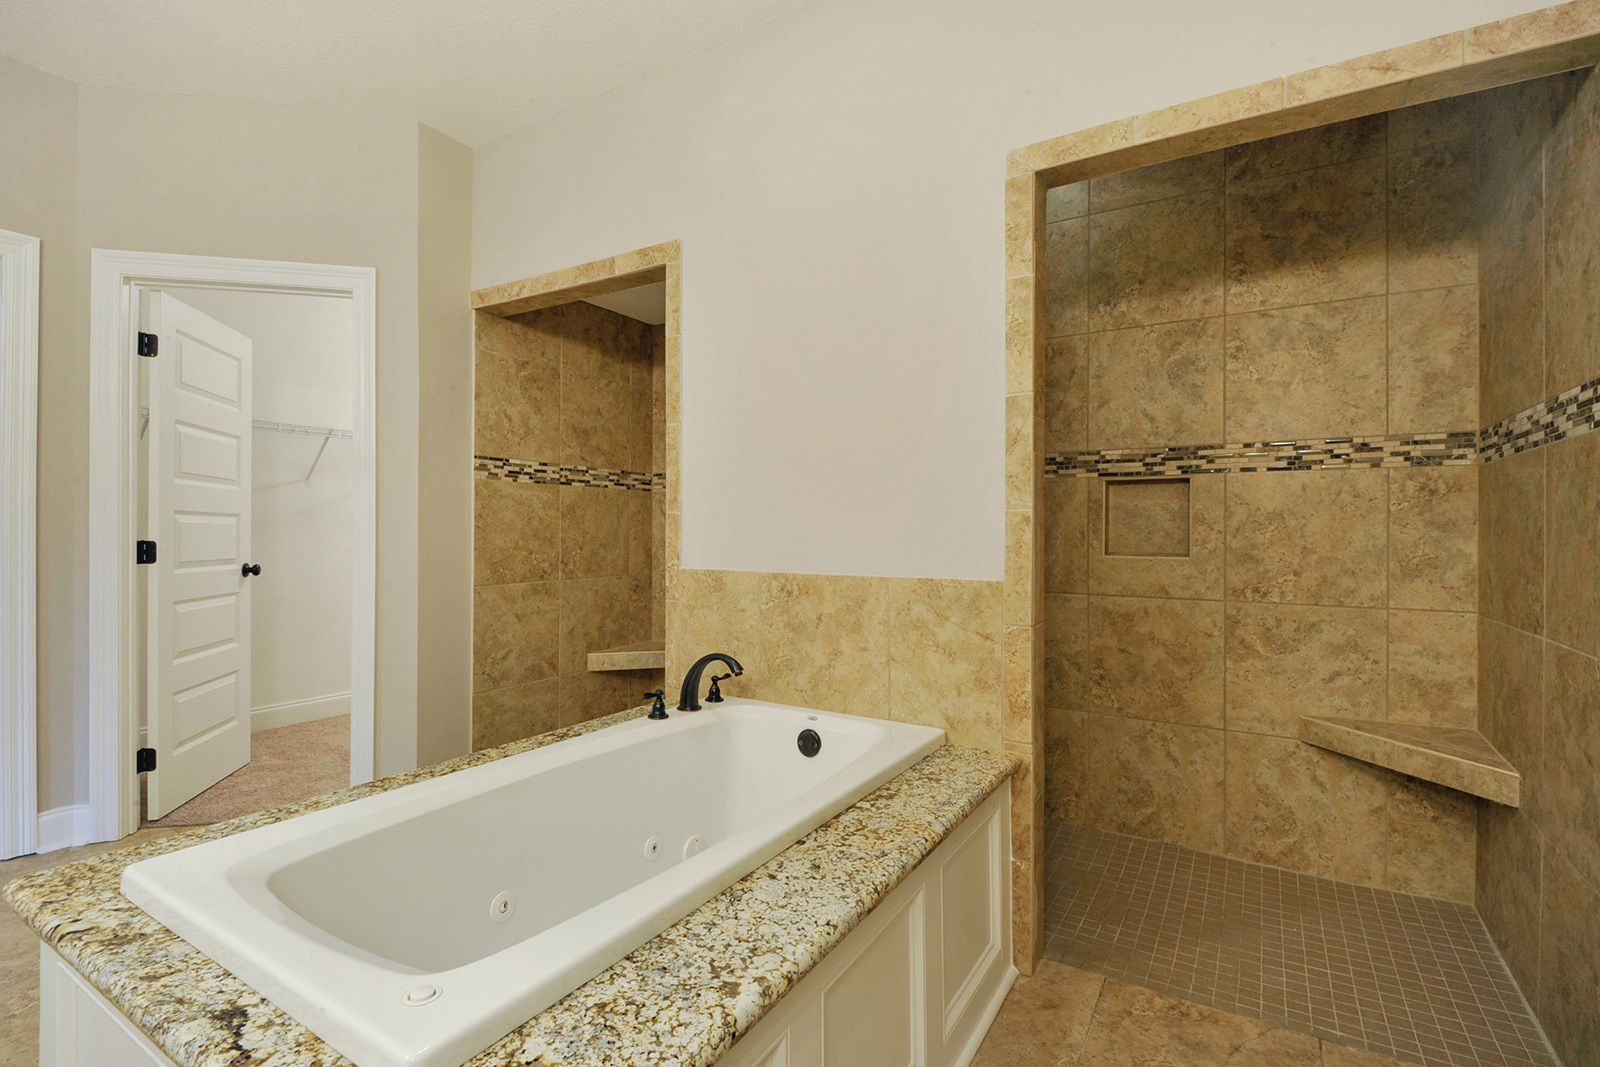 Superbe The Oasis Bath With Full Tiled Walk In Shower And Jetted Soaker Tub.